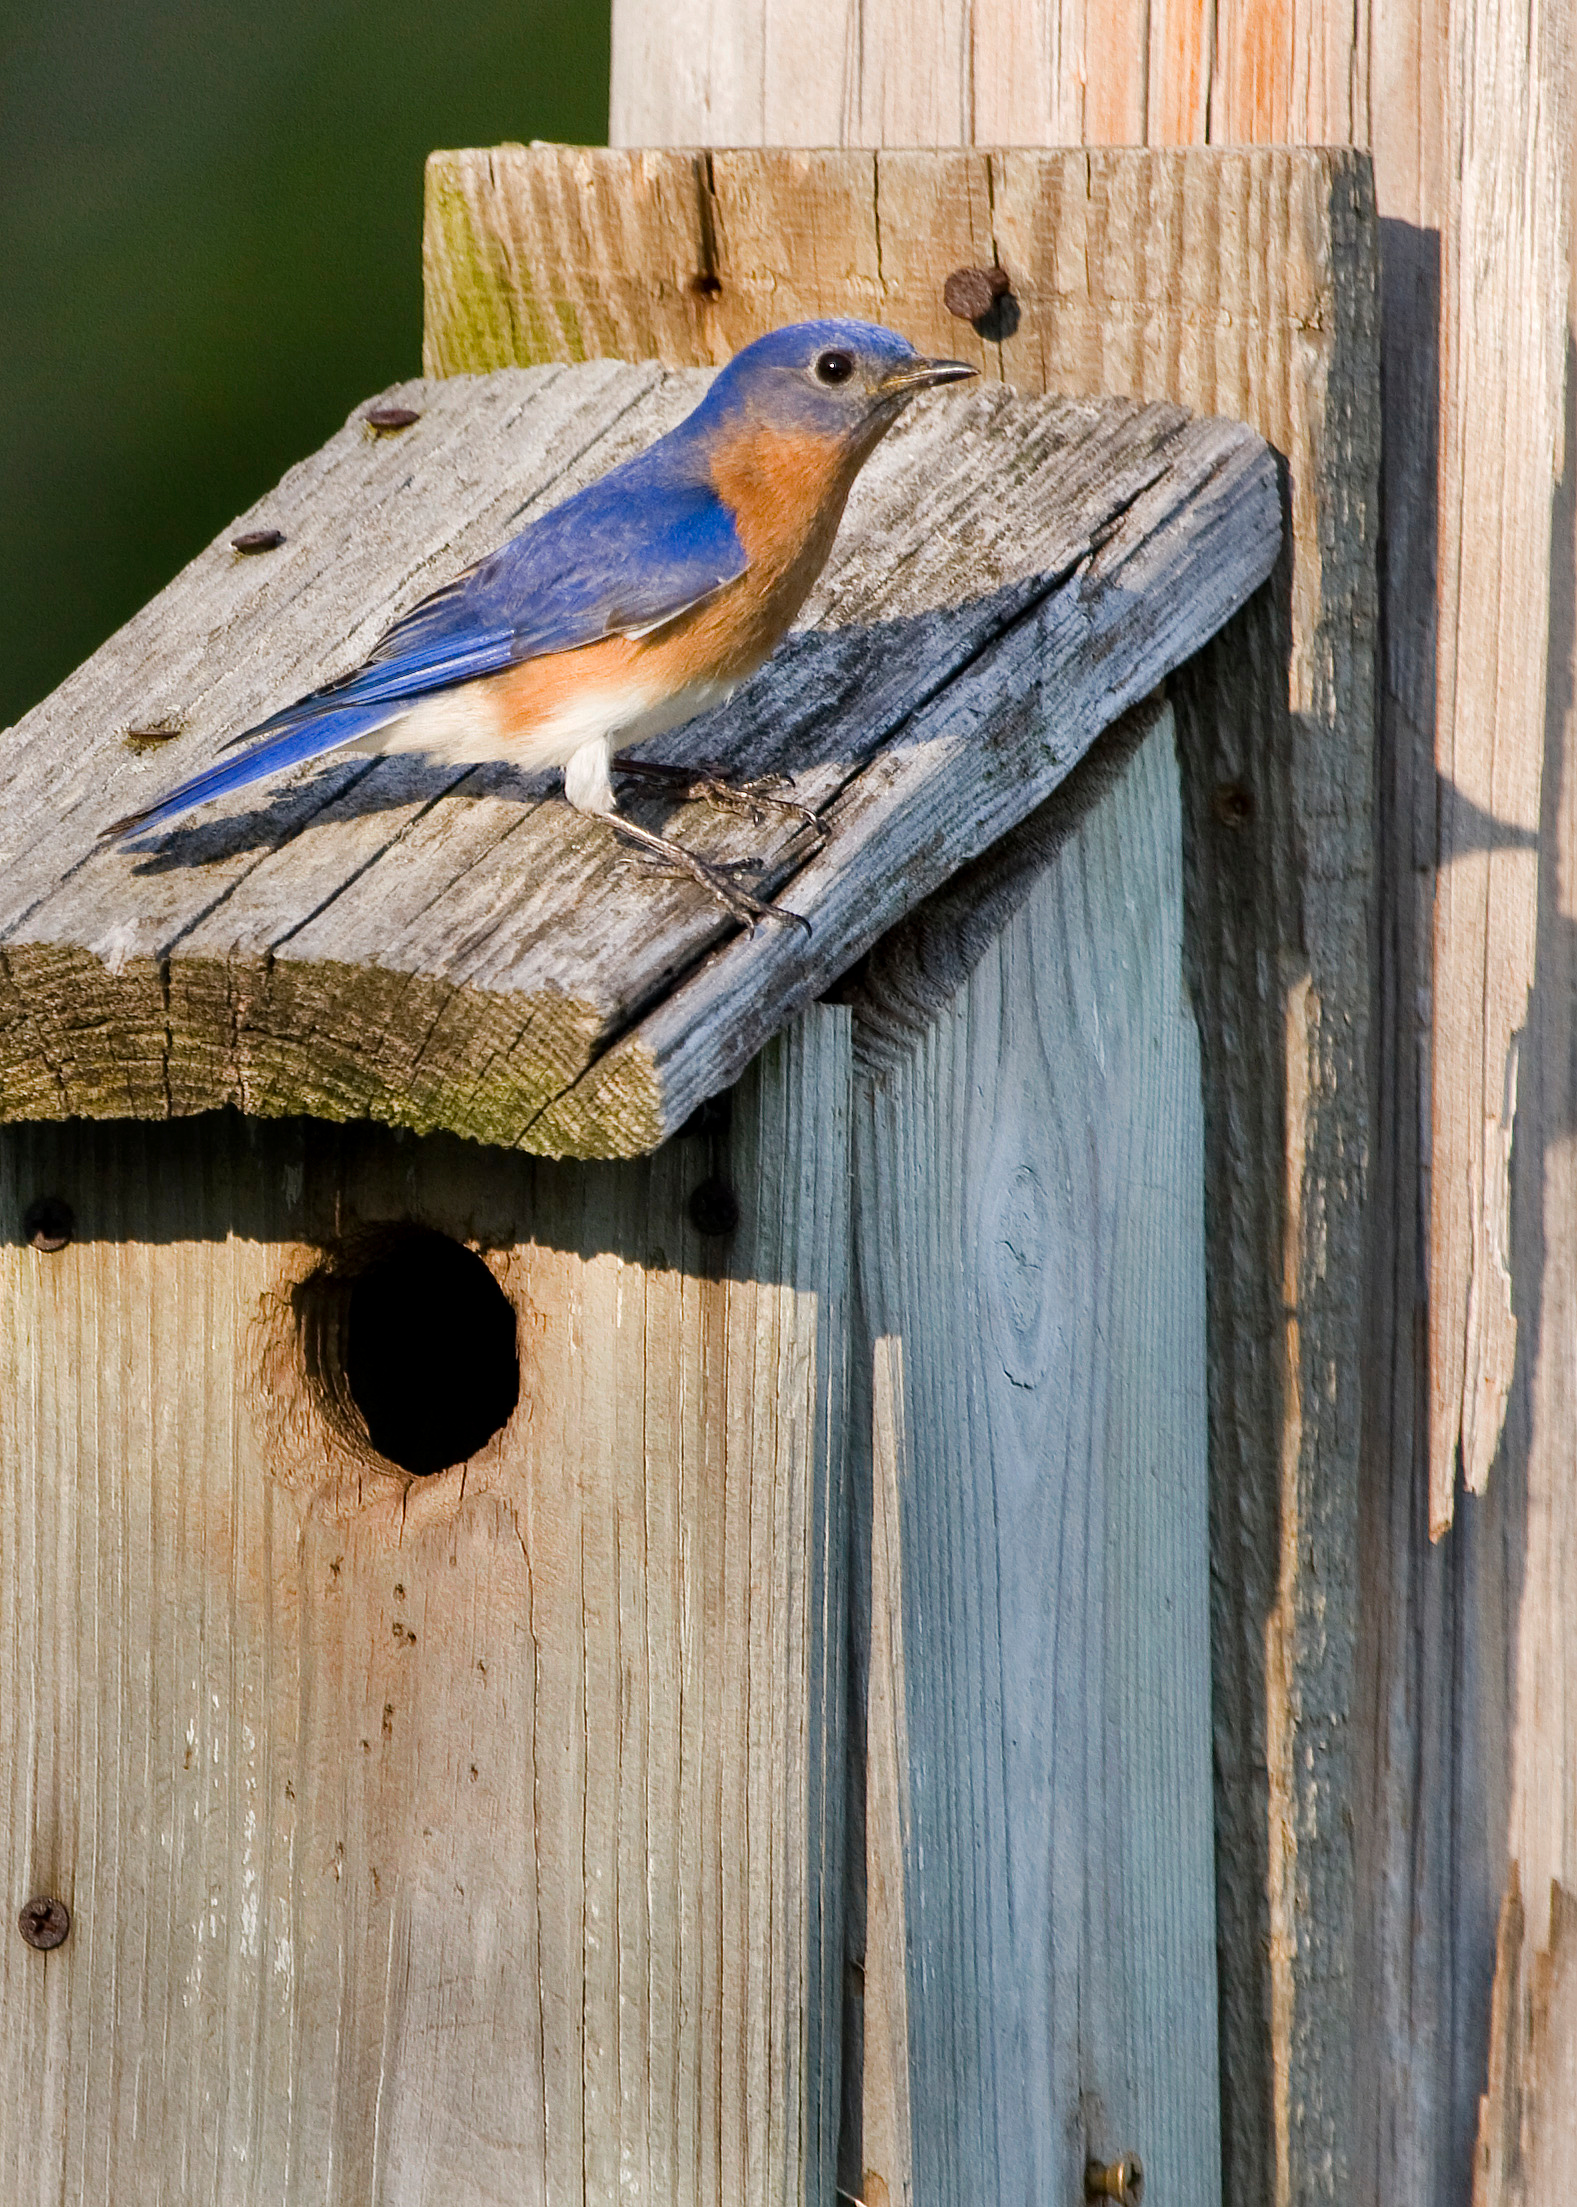 Bluebird on nest box ... now if I can just get one or two to frequent my outdoor 'bird studio' :)